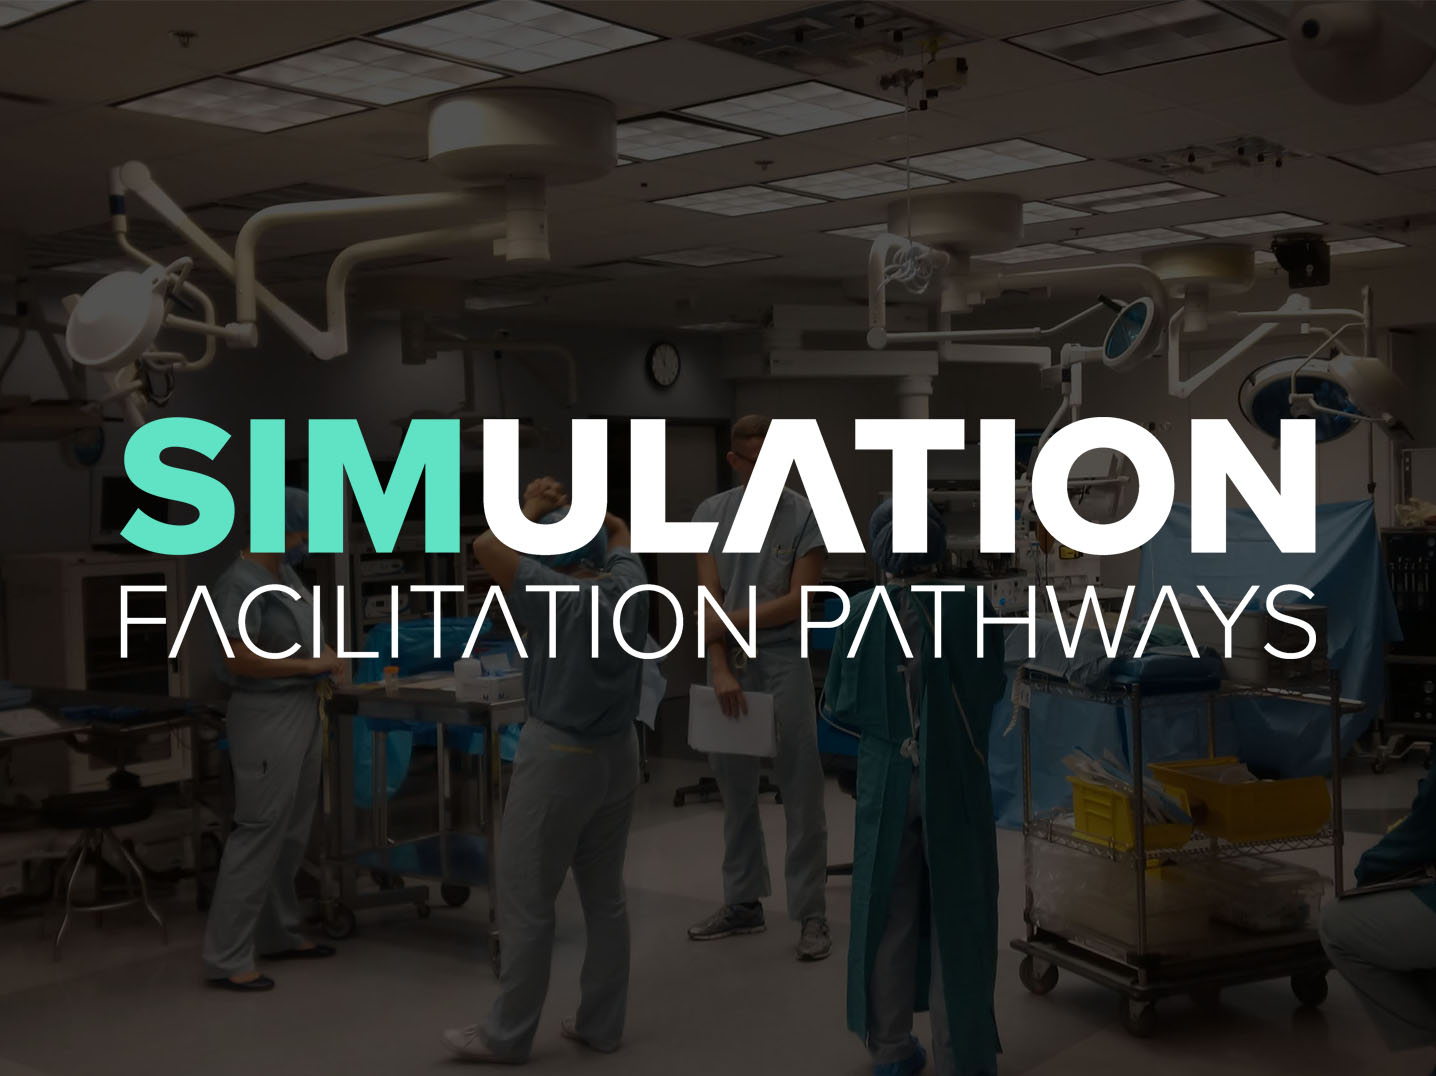 Simulation Facilitation Pathways